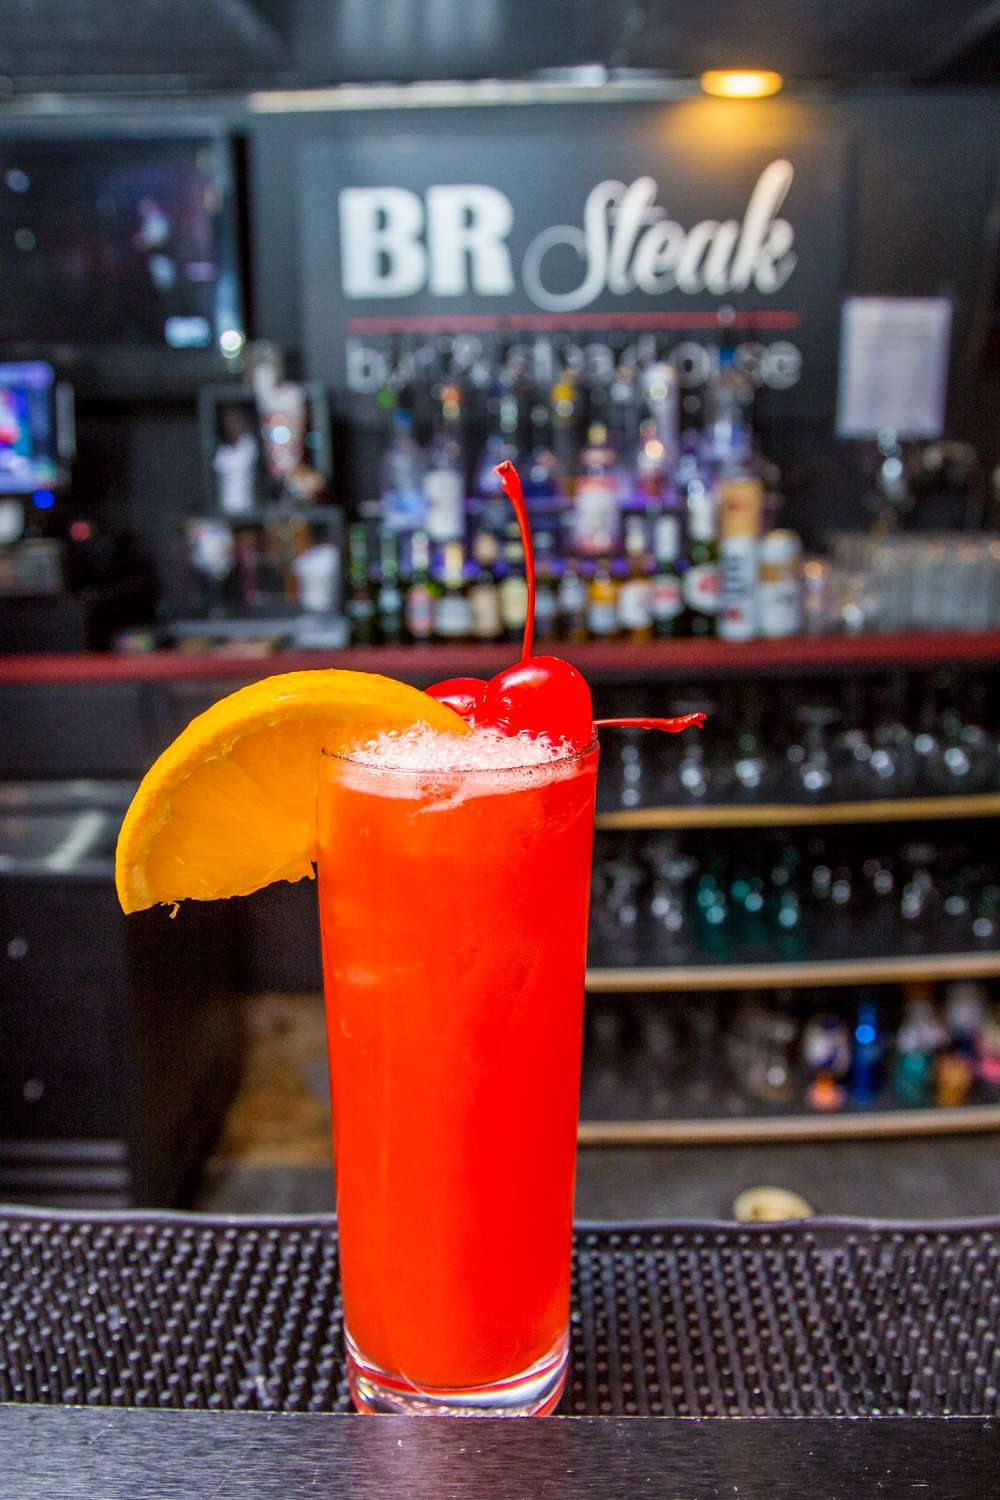 BR Bar - restaurant  | Photo 8 of 10 | Address: 18601 S Cicero Ave, Country Club Hills, IL 60478, USA | Phone: (708) 799-6223